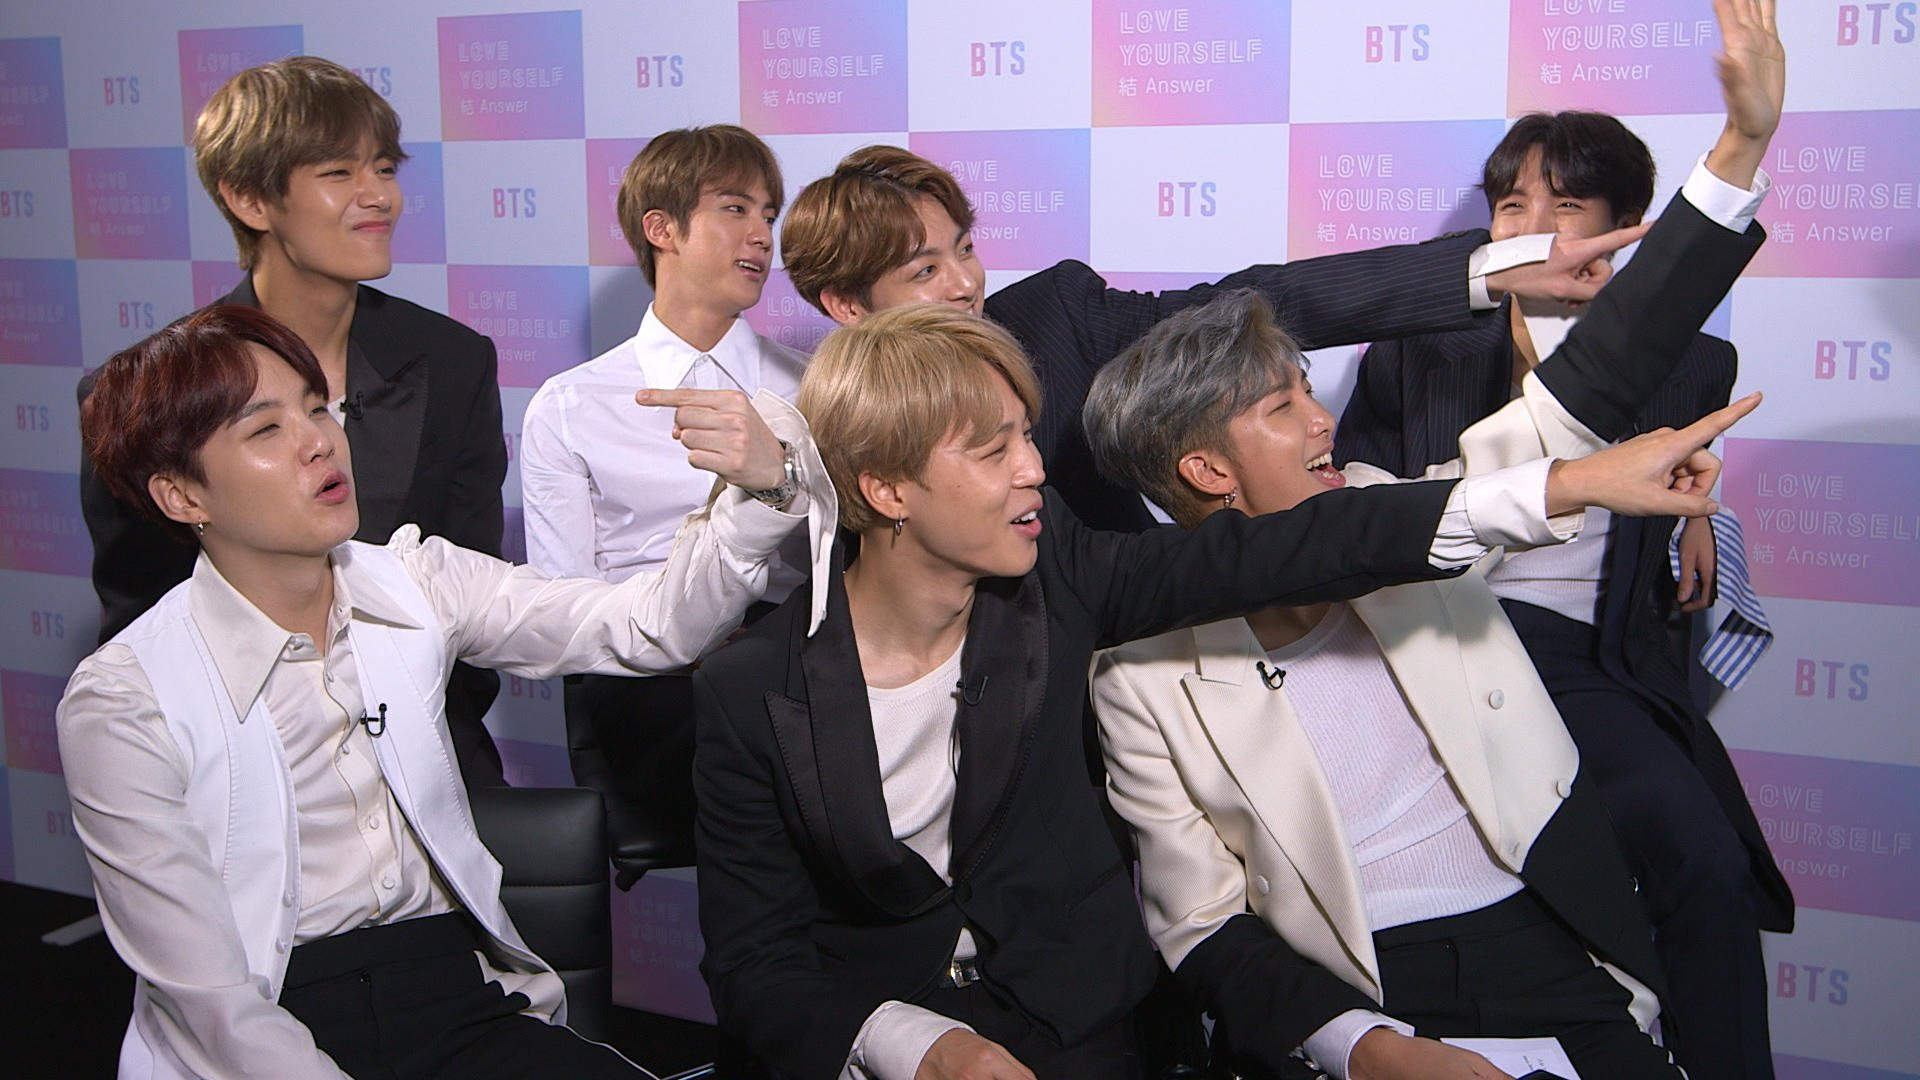 BTS vs. The Fans - we put the #BTSArmy's questions to the K-Pop heroes @BTS_twt https://t.co/YCauGTagJk https://t.co/tybCrRdX4W